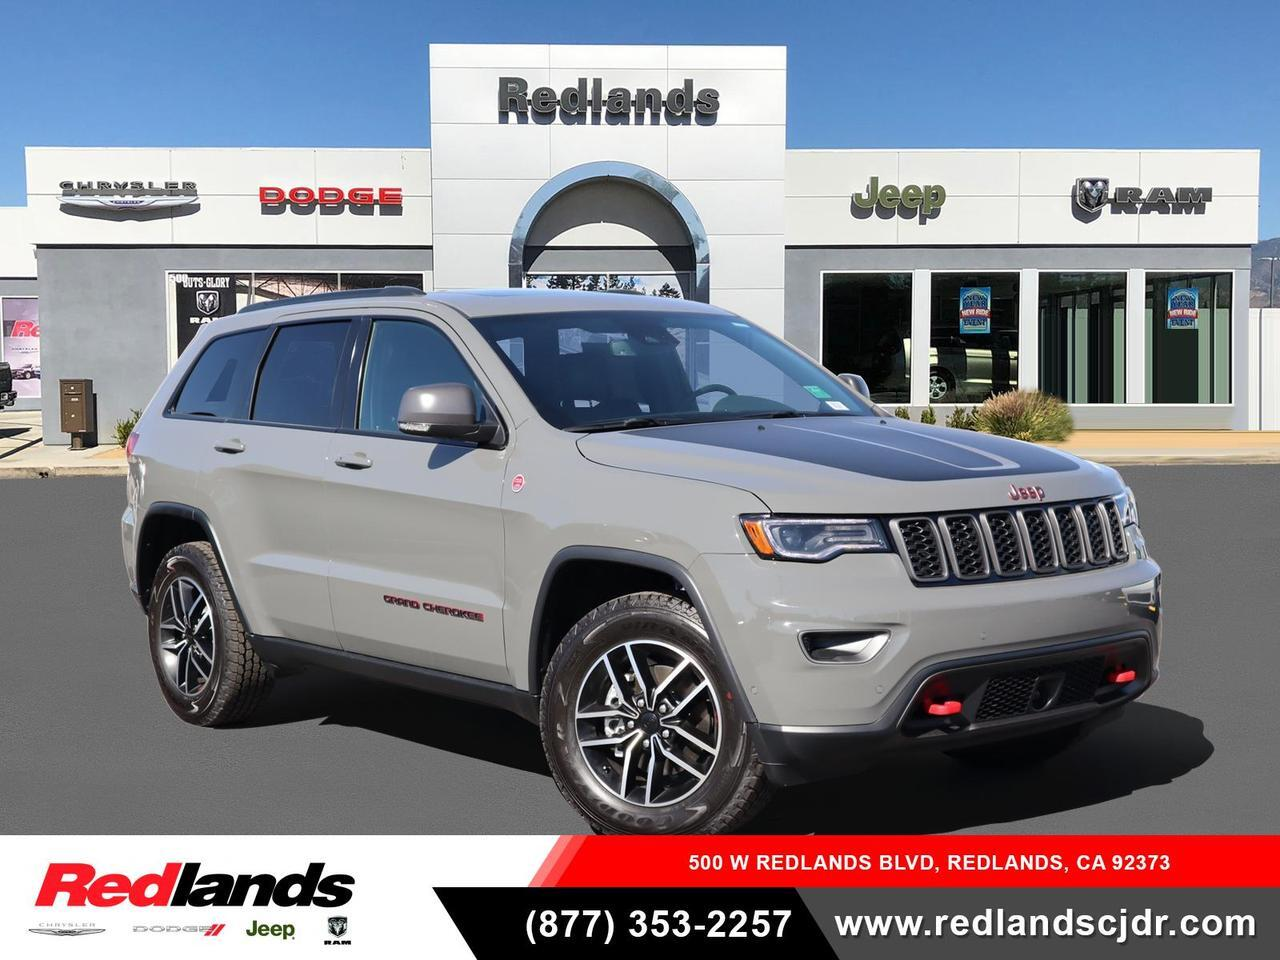 2020 Jeep Grand Cherokee TRAILHAWK 4X4 Redlands CA